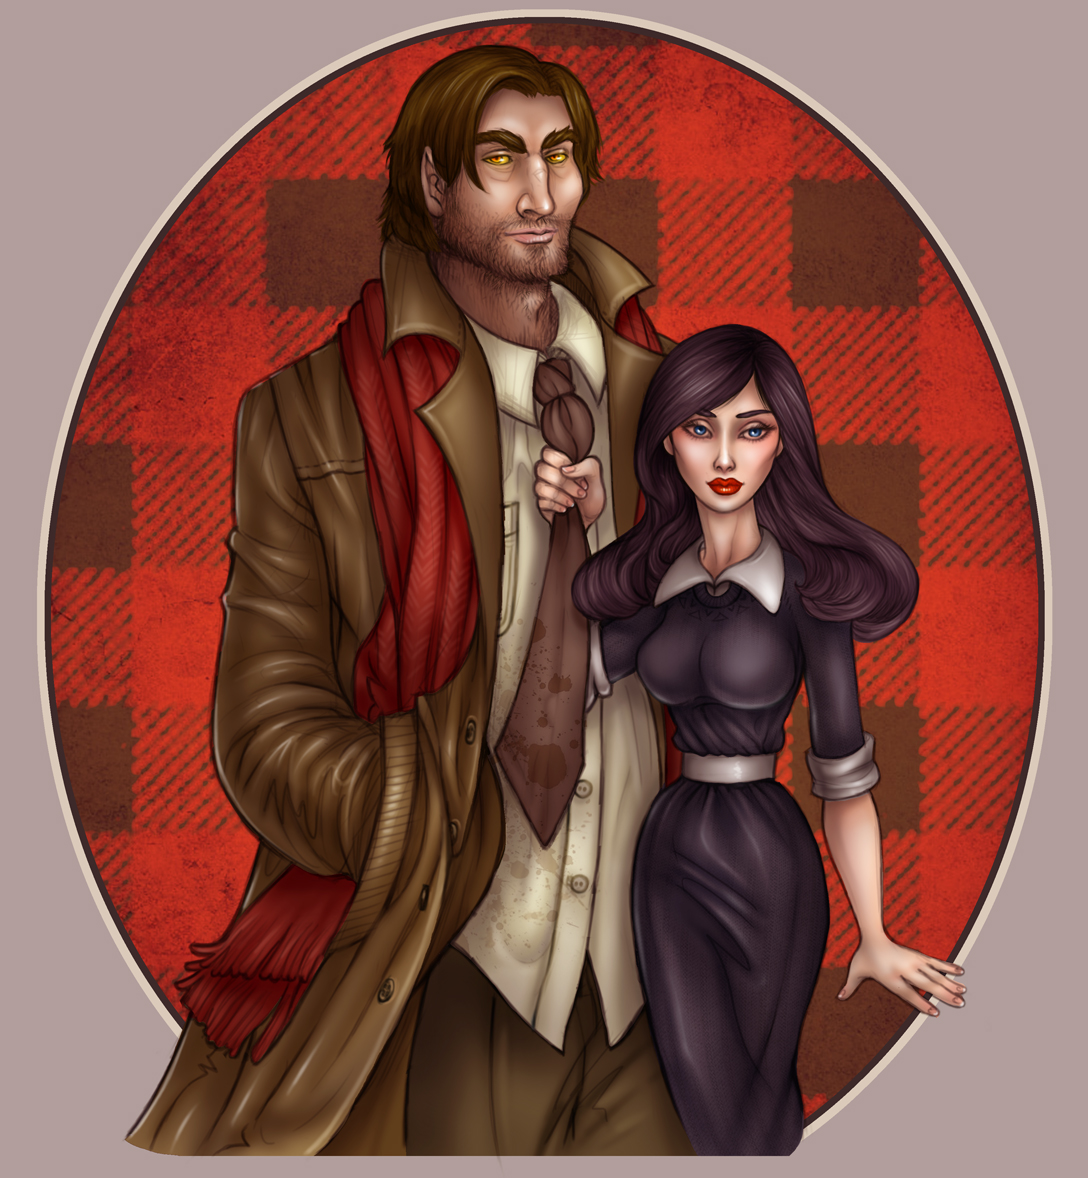 Bigby wolf and snow white kids - photo#11